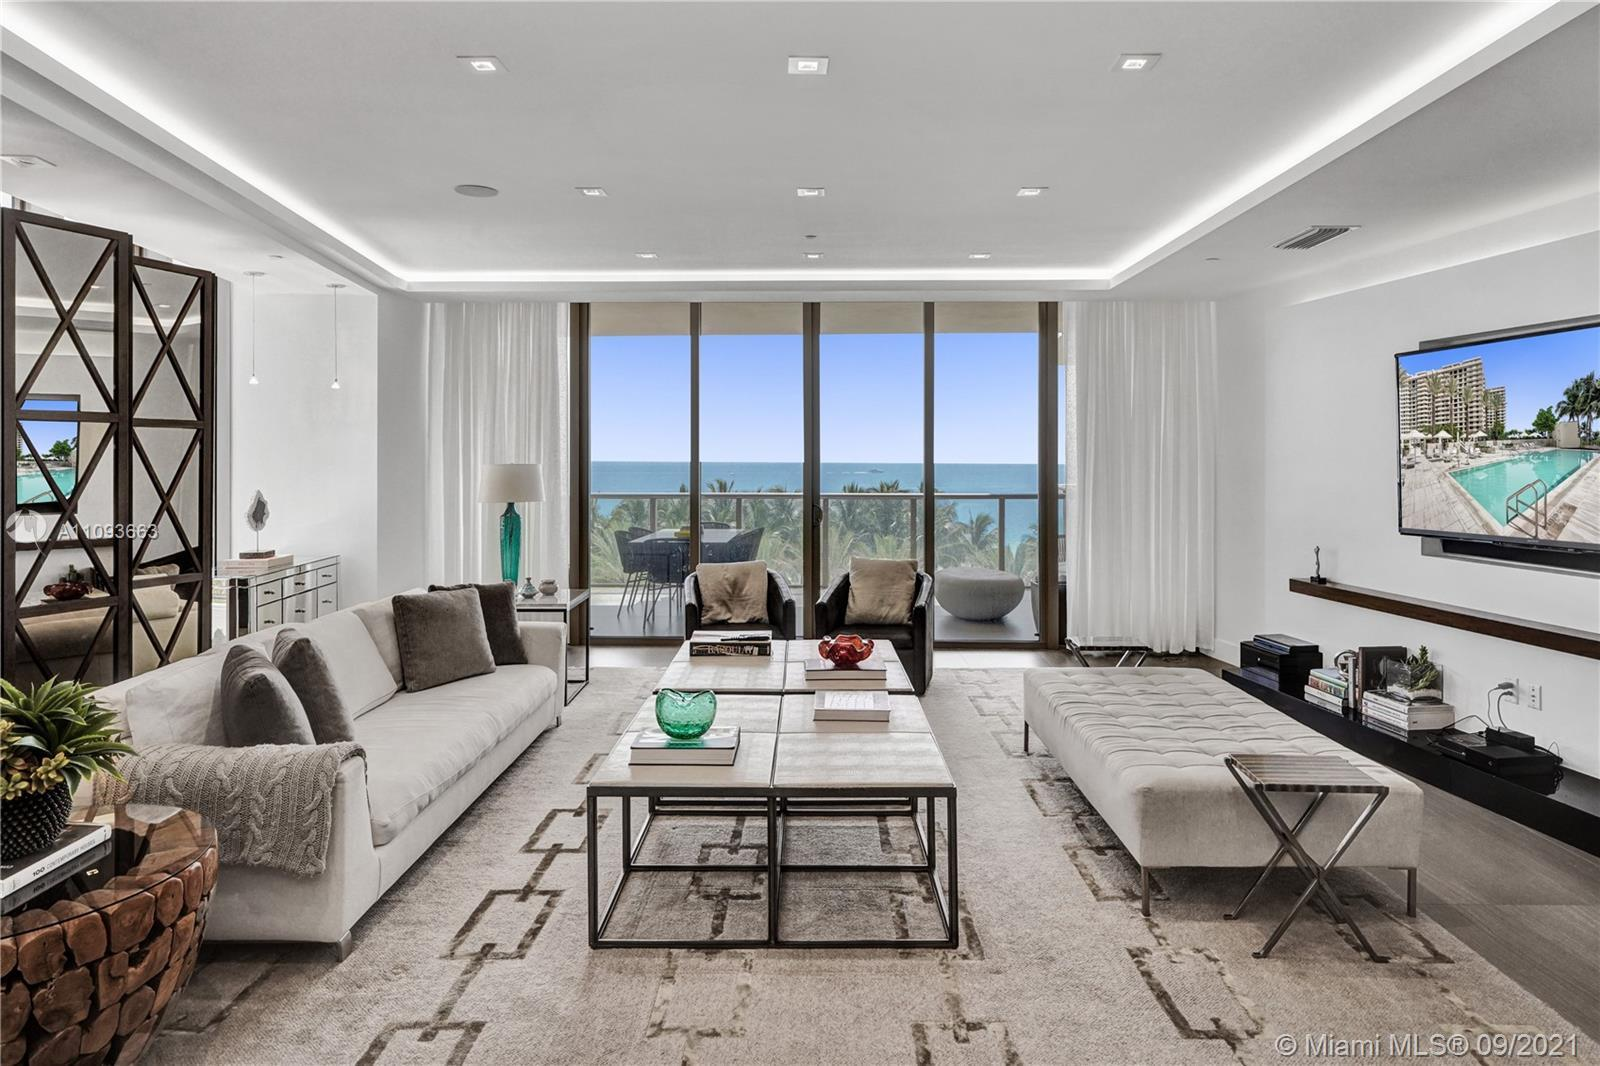 Enjoy this specious 3 bedrooms / 3.5 bathroom in St Regis. 3524sf with ocean views. This apartment i